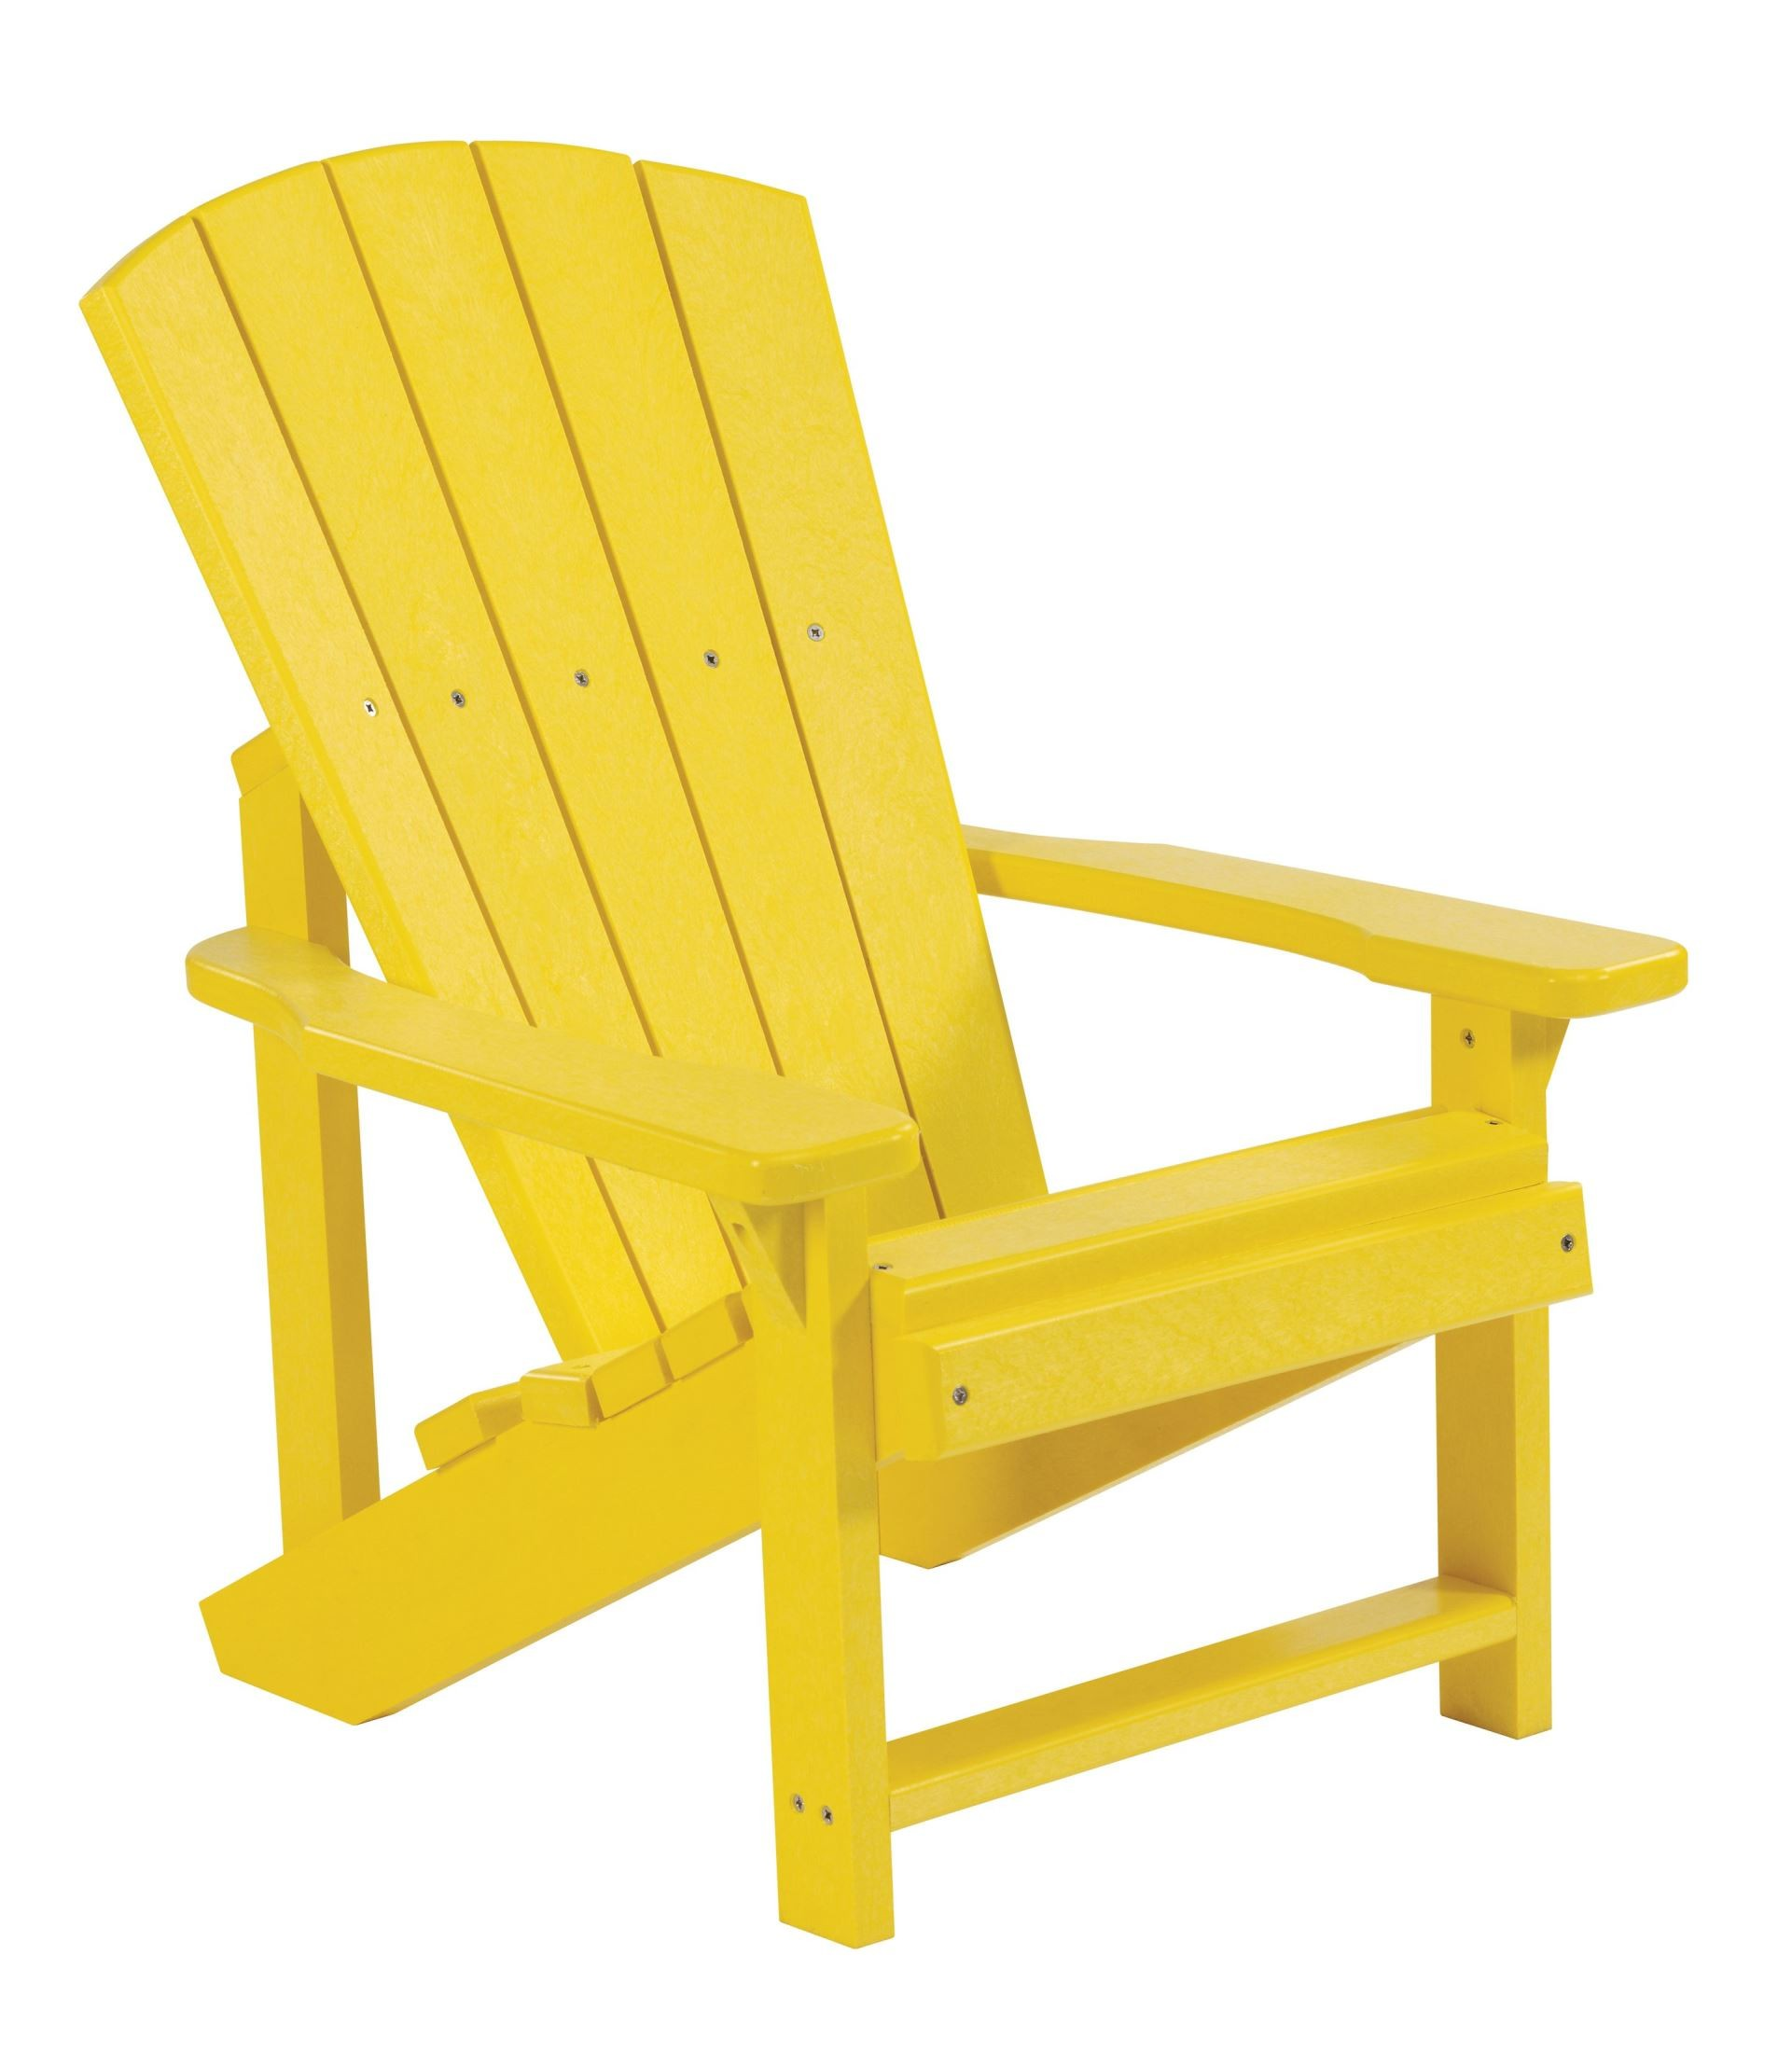 Kid Adirondack Chair Generations Yellow Kids Adirondack Chair From Cr Plastic